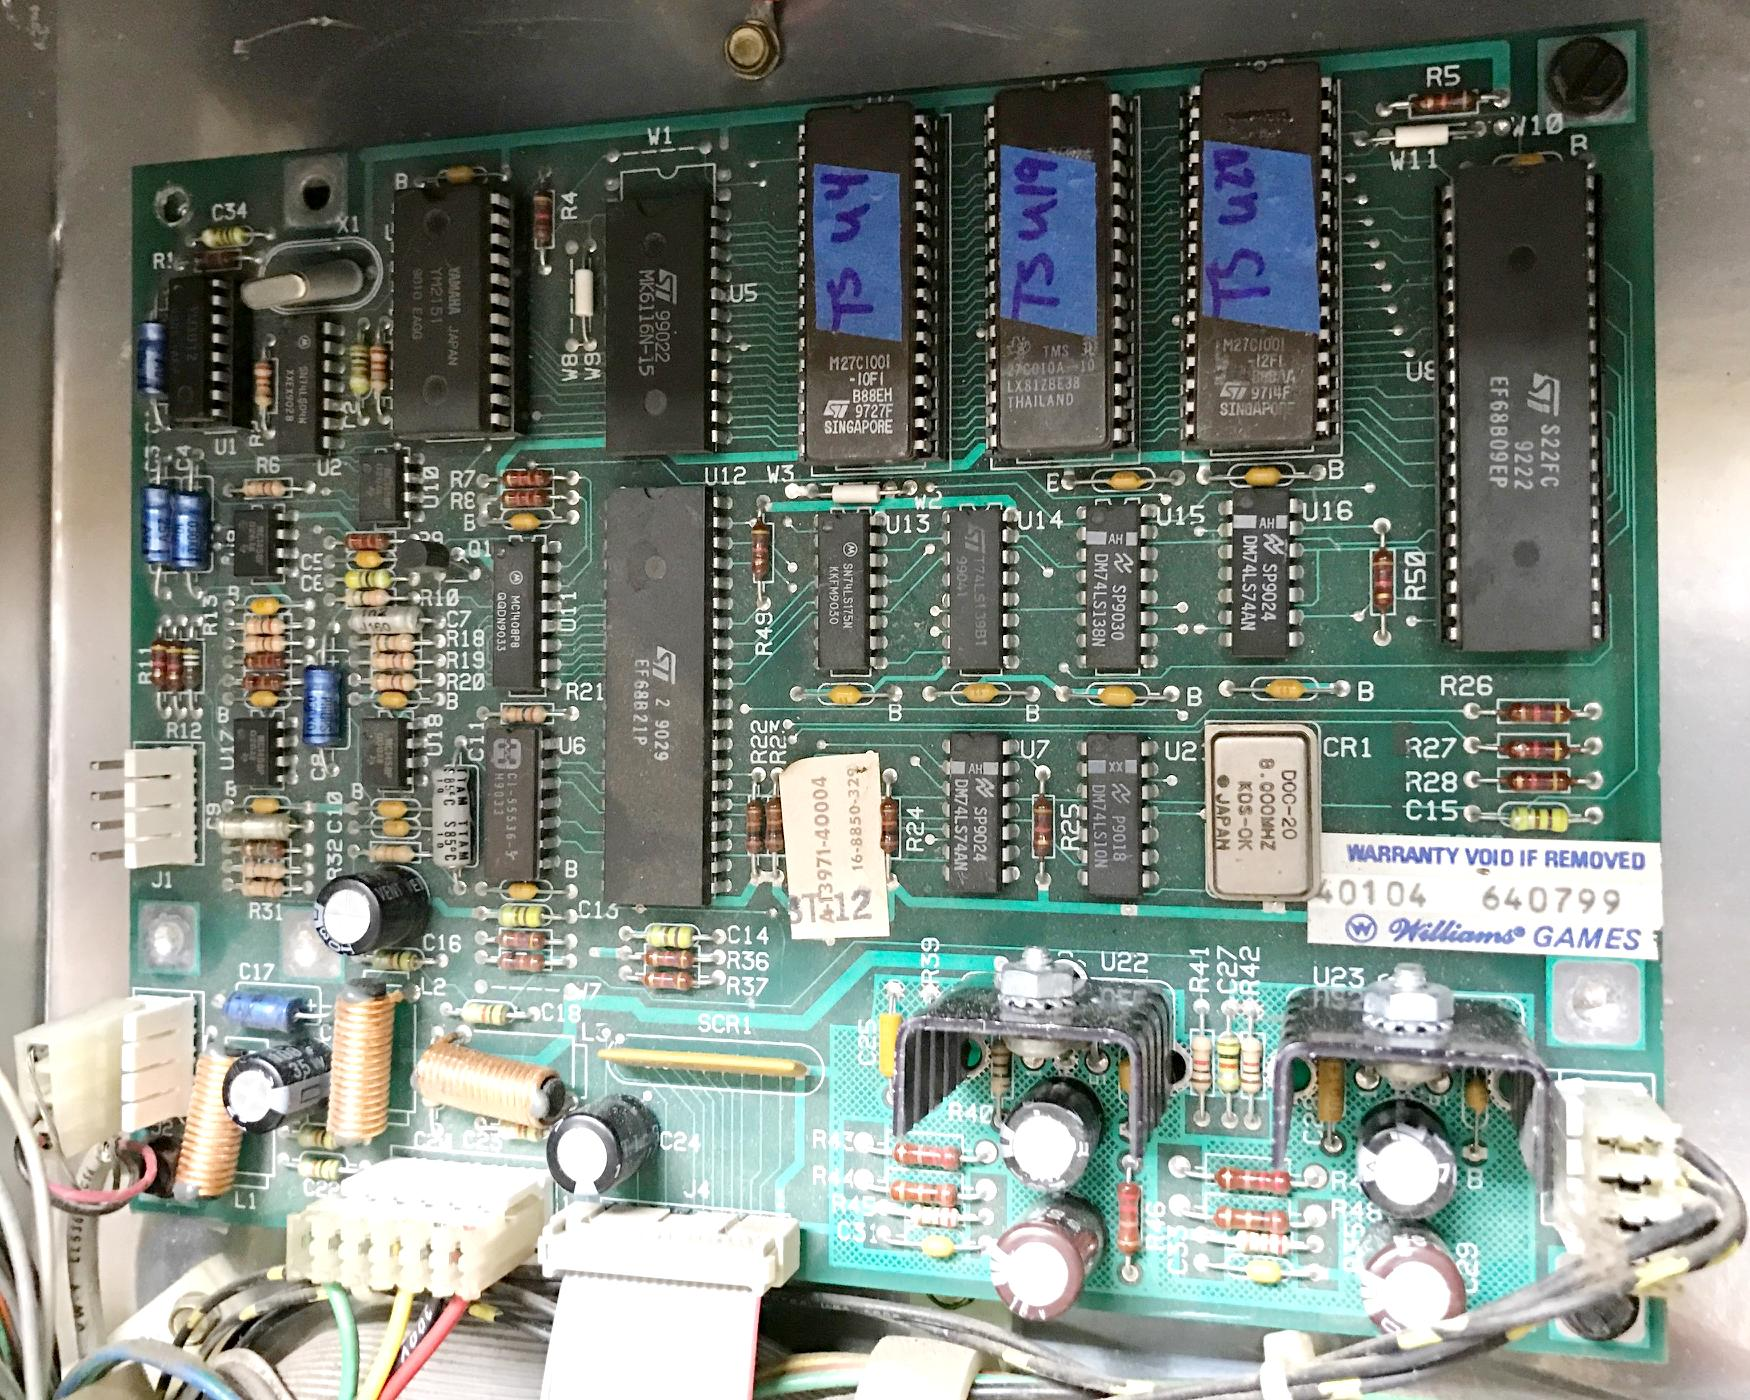 Pinball Repair Bally 6803 Games 1985 1989 And Diagnostic Of Electronic Circuit Board Stock Photo